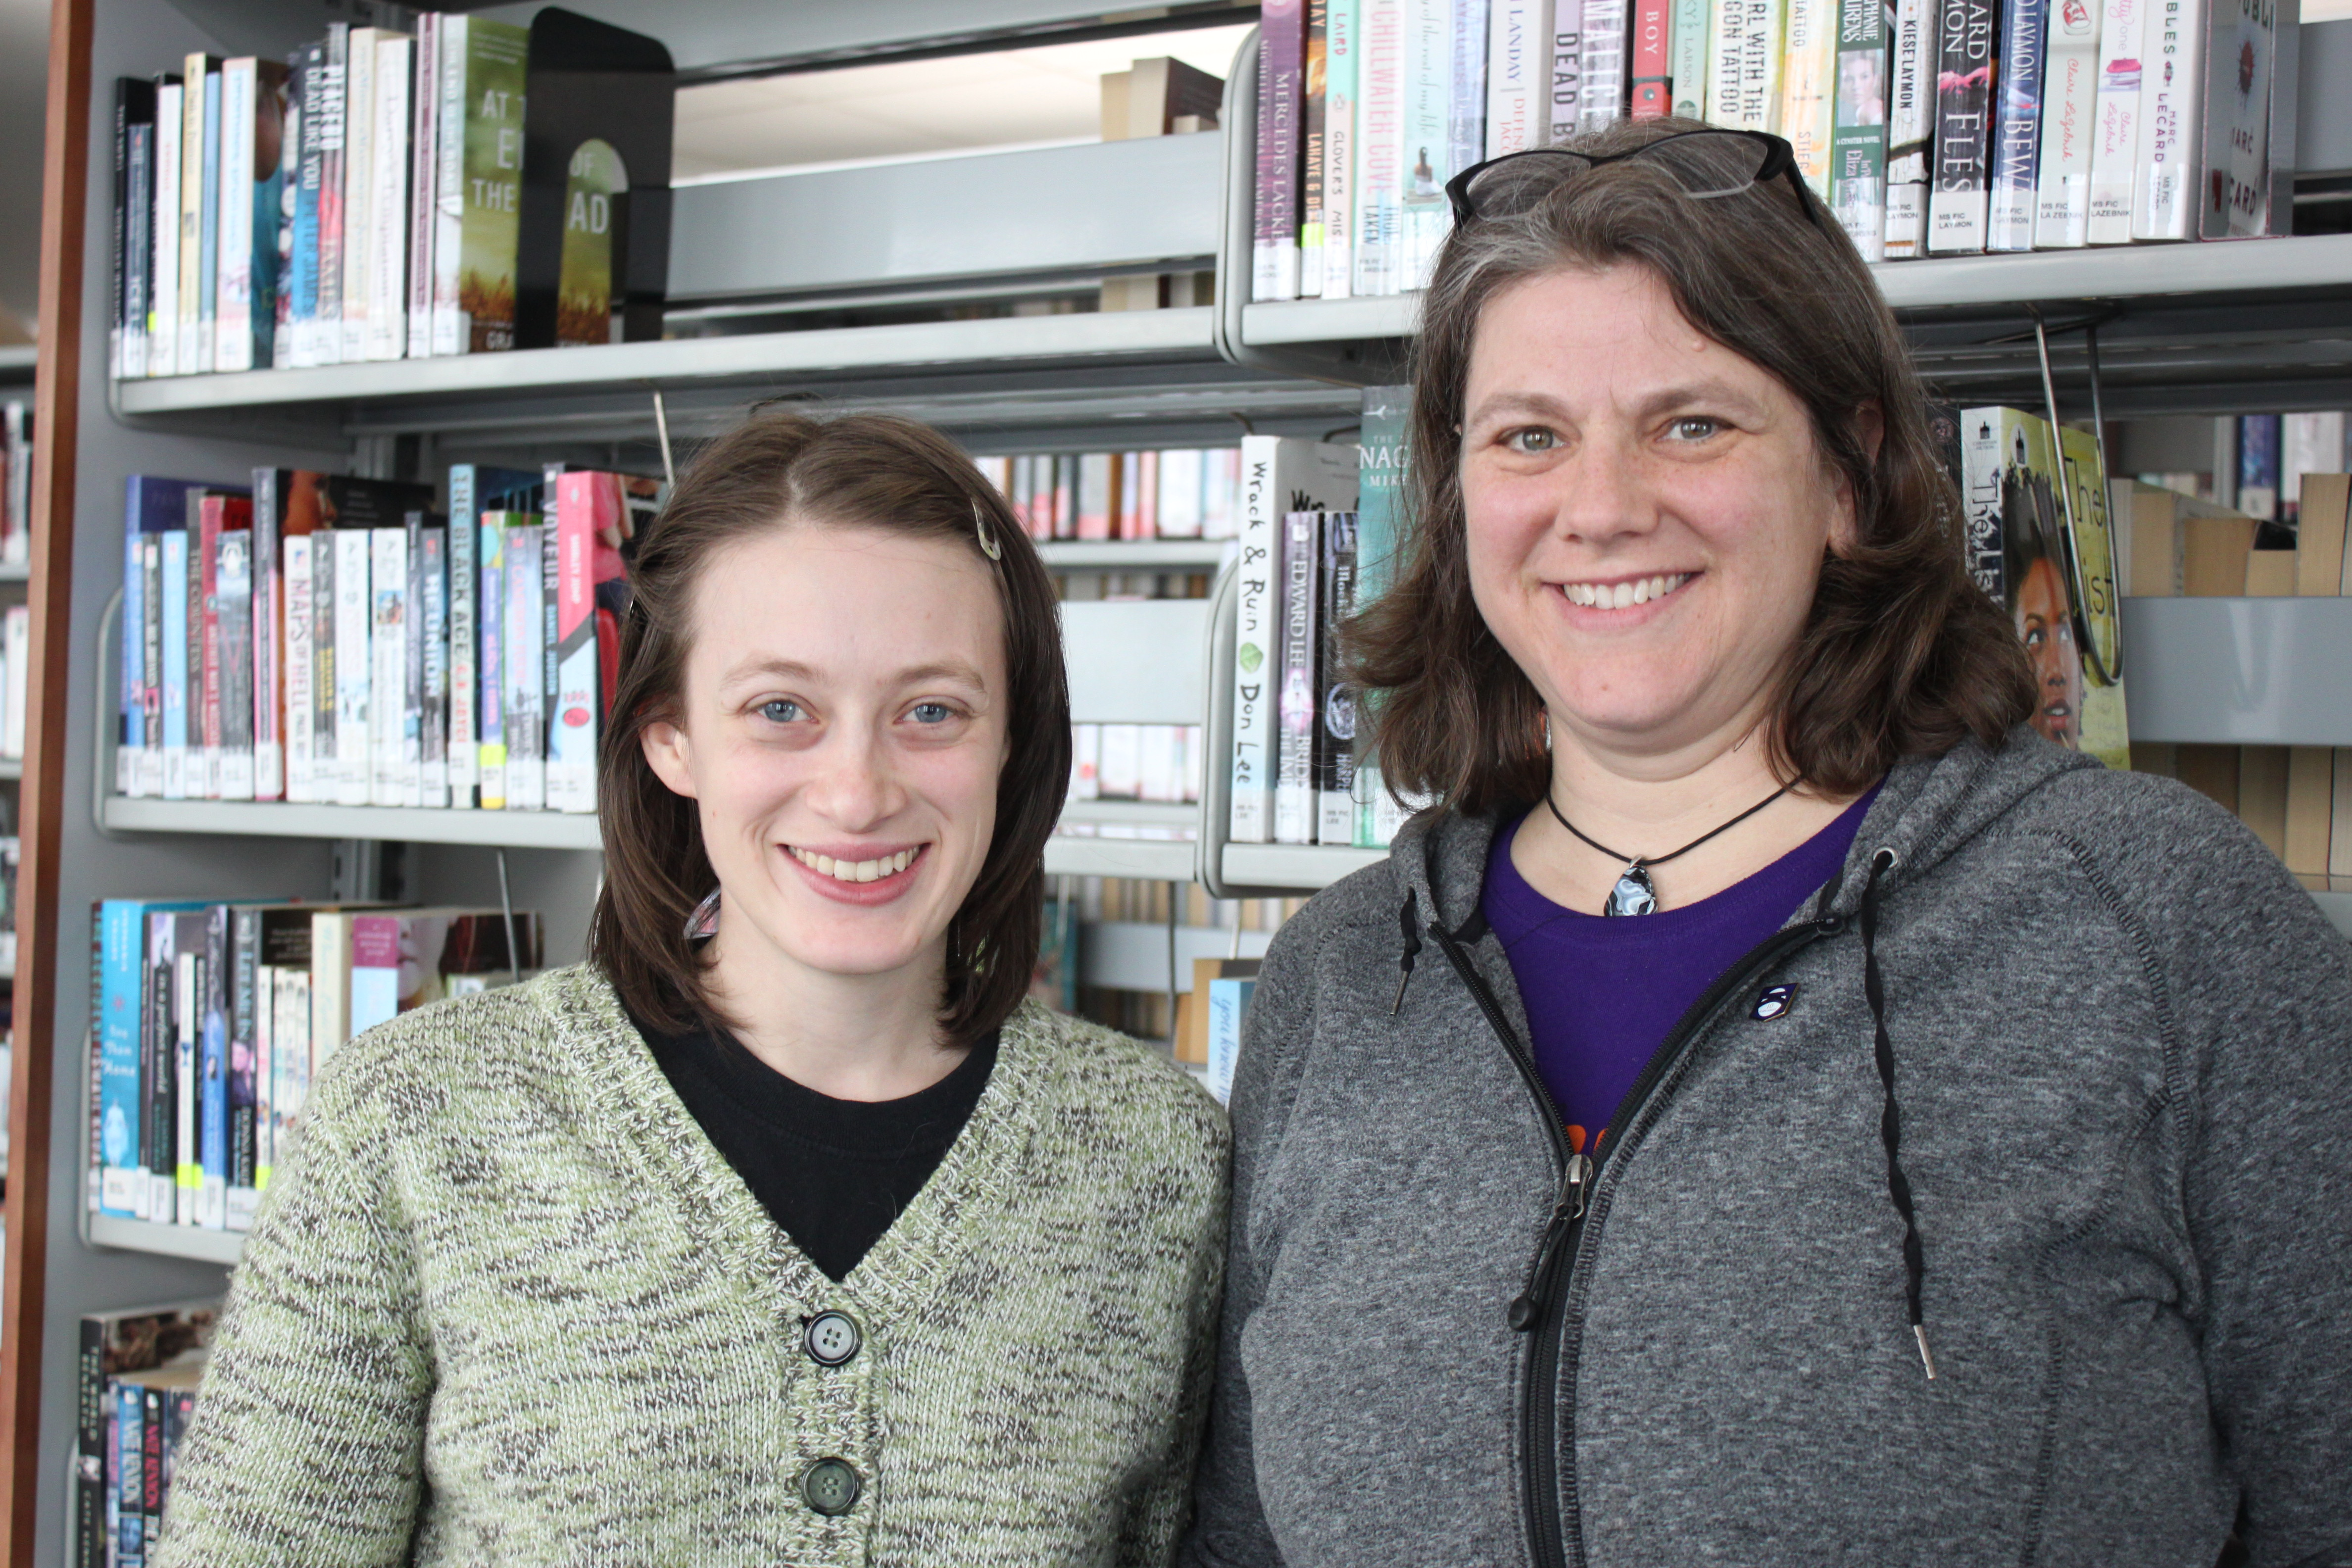 Juneau Public Libraries librarian Andrea Hirsh and program coordinator Beth Weigel. (Photo by Lisa Phu/KTOO)